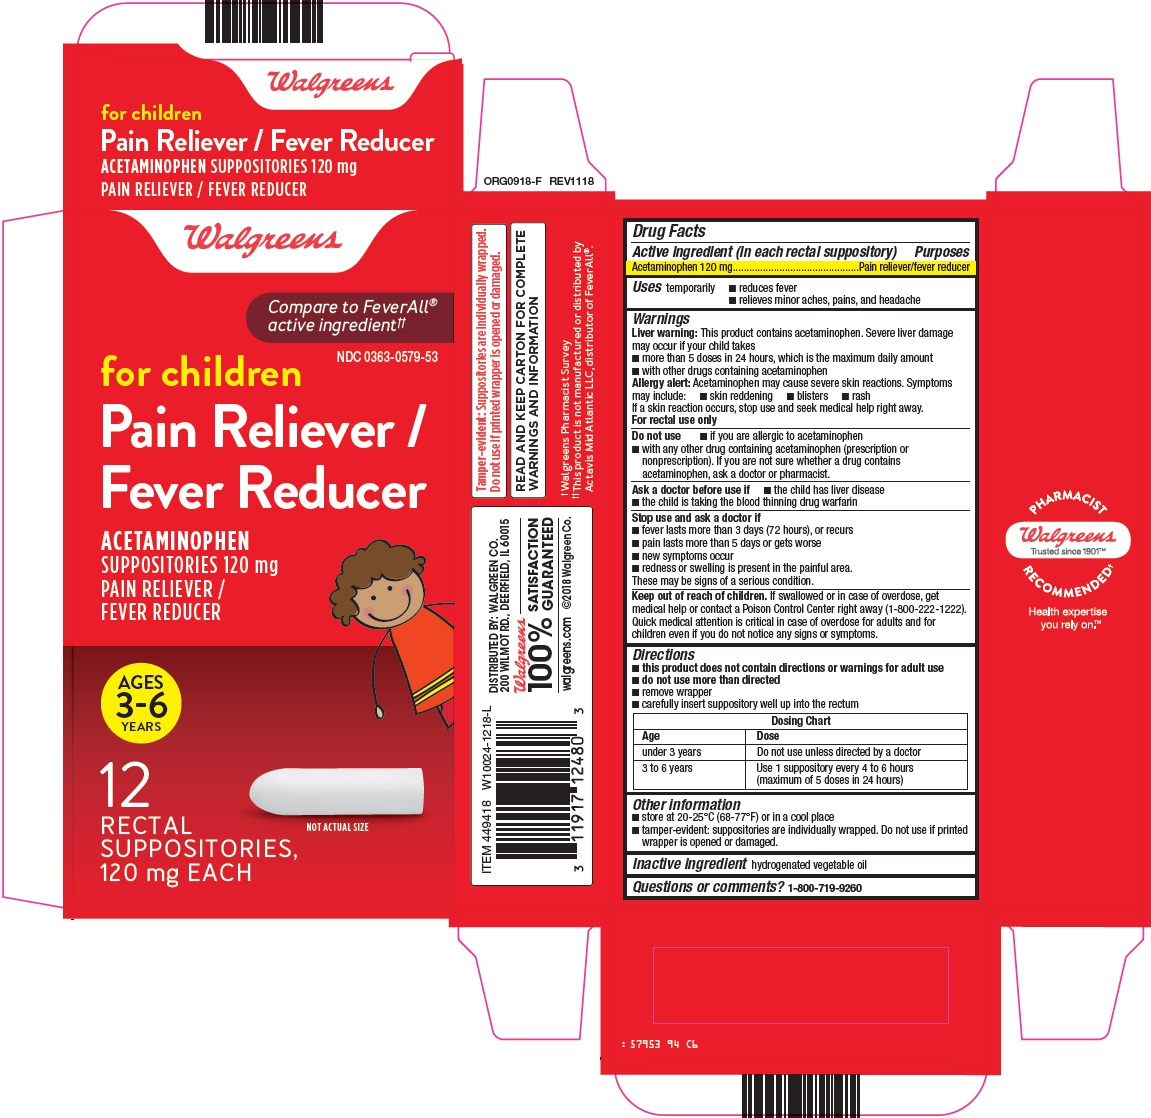 children pain reliever fever reducer image